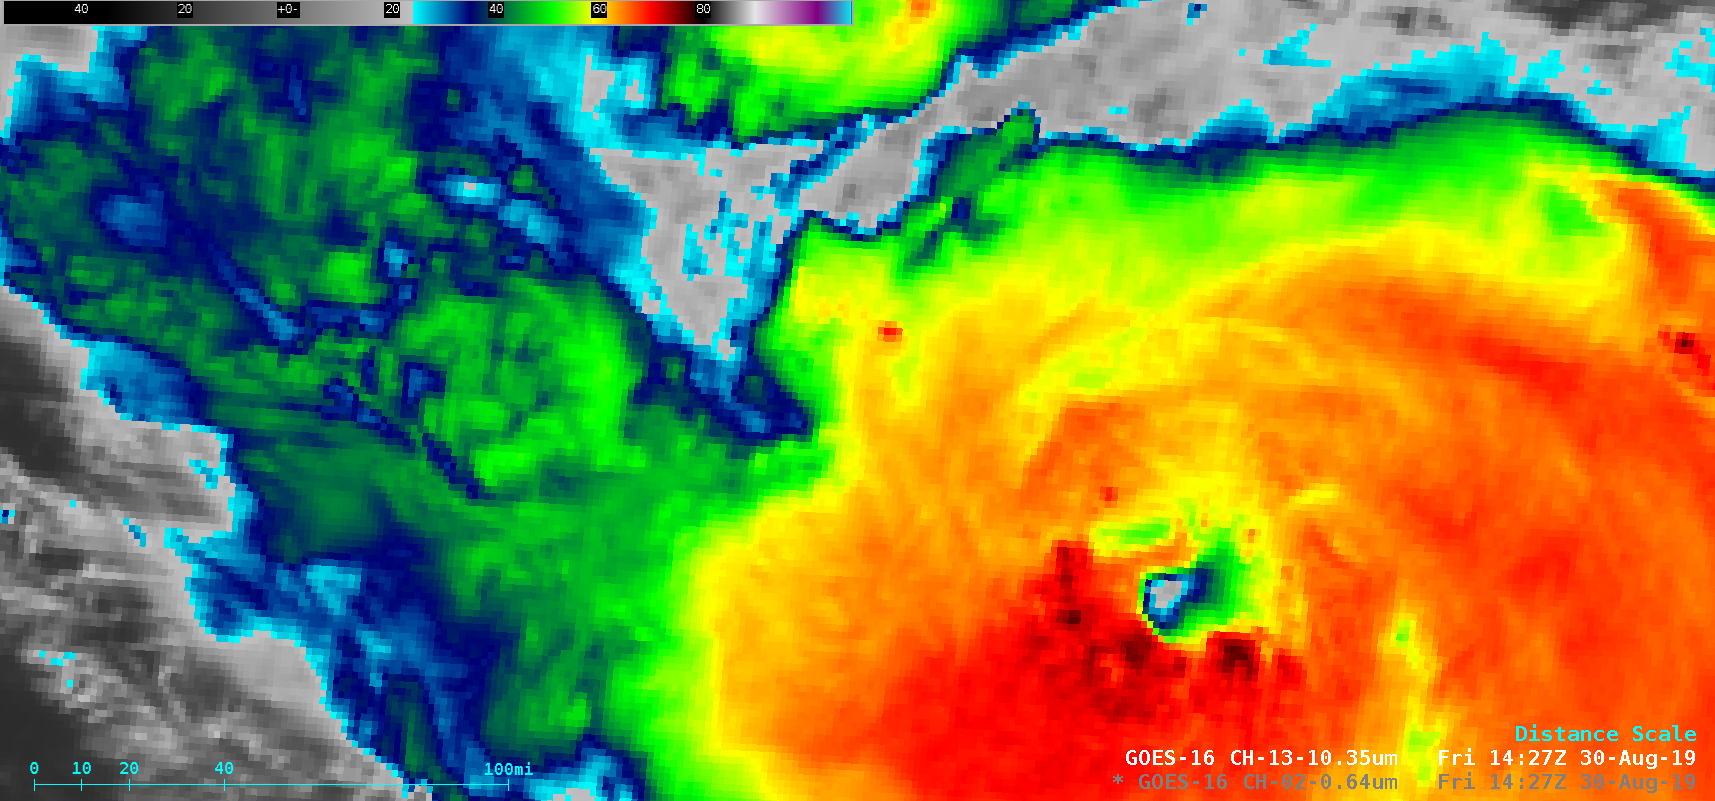 """GOES-16 """"Red"""" Visible (0.64 µm) and """"Clean"""" Infrared Window (10.35 µm) images [click to play animation 